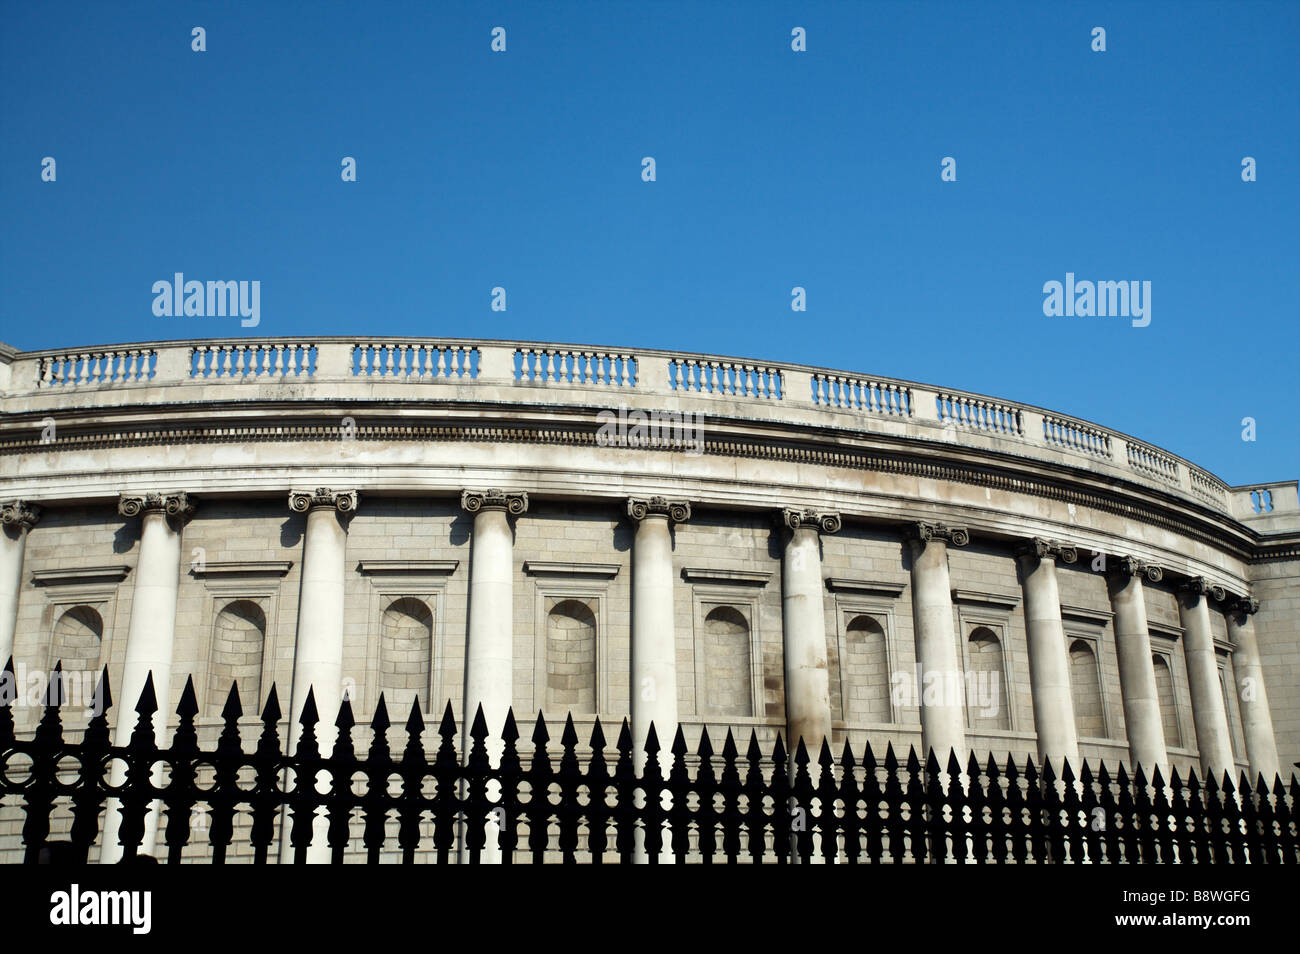 The Bank of Ireland on College Green Dublin Ireland in bright sunshine with a bright blue sky and black railings - Stock Image